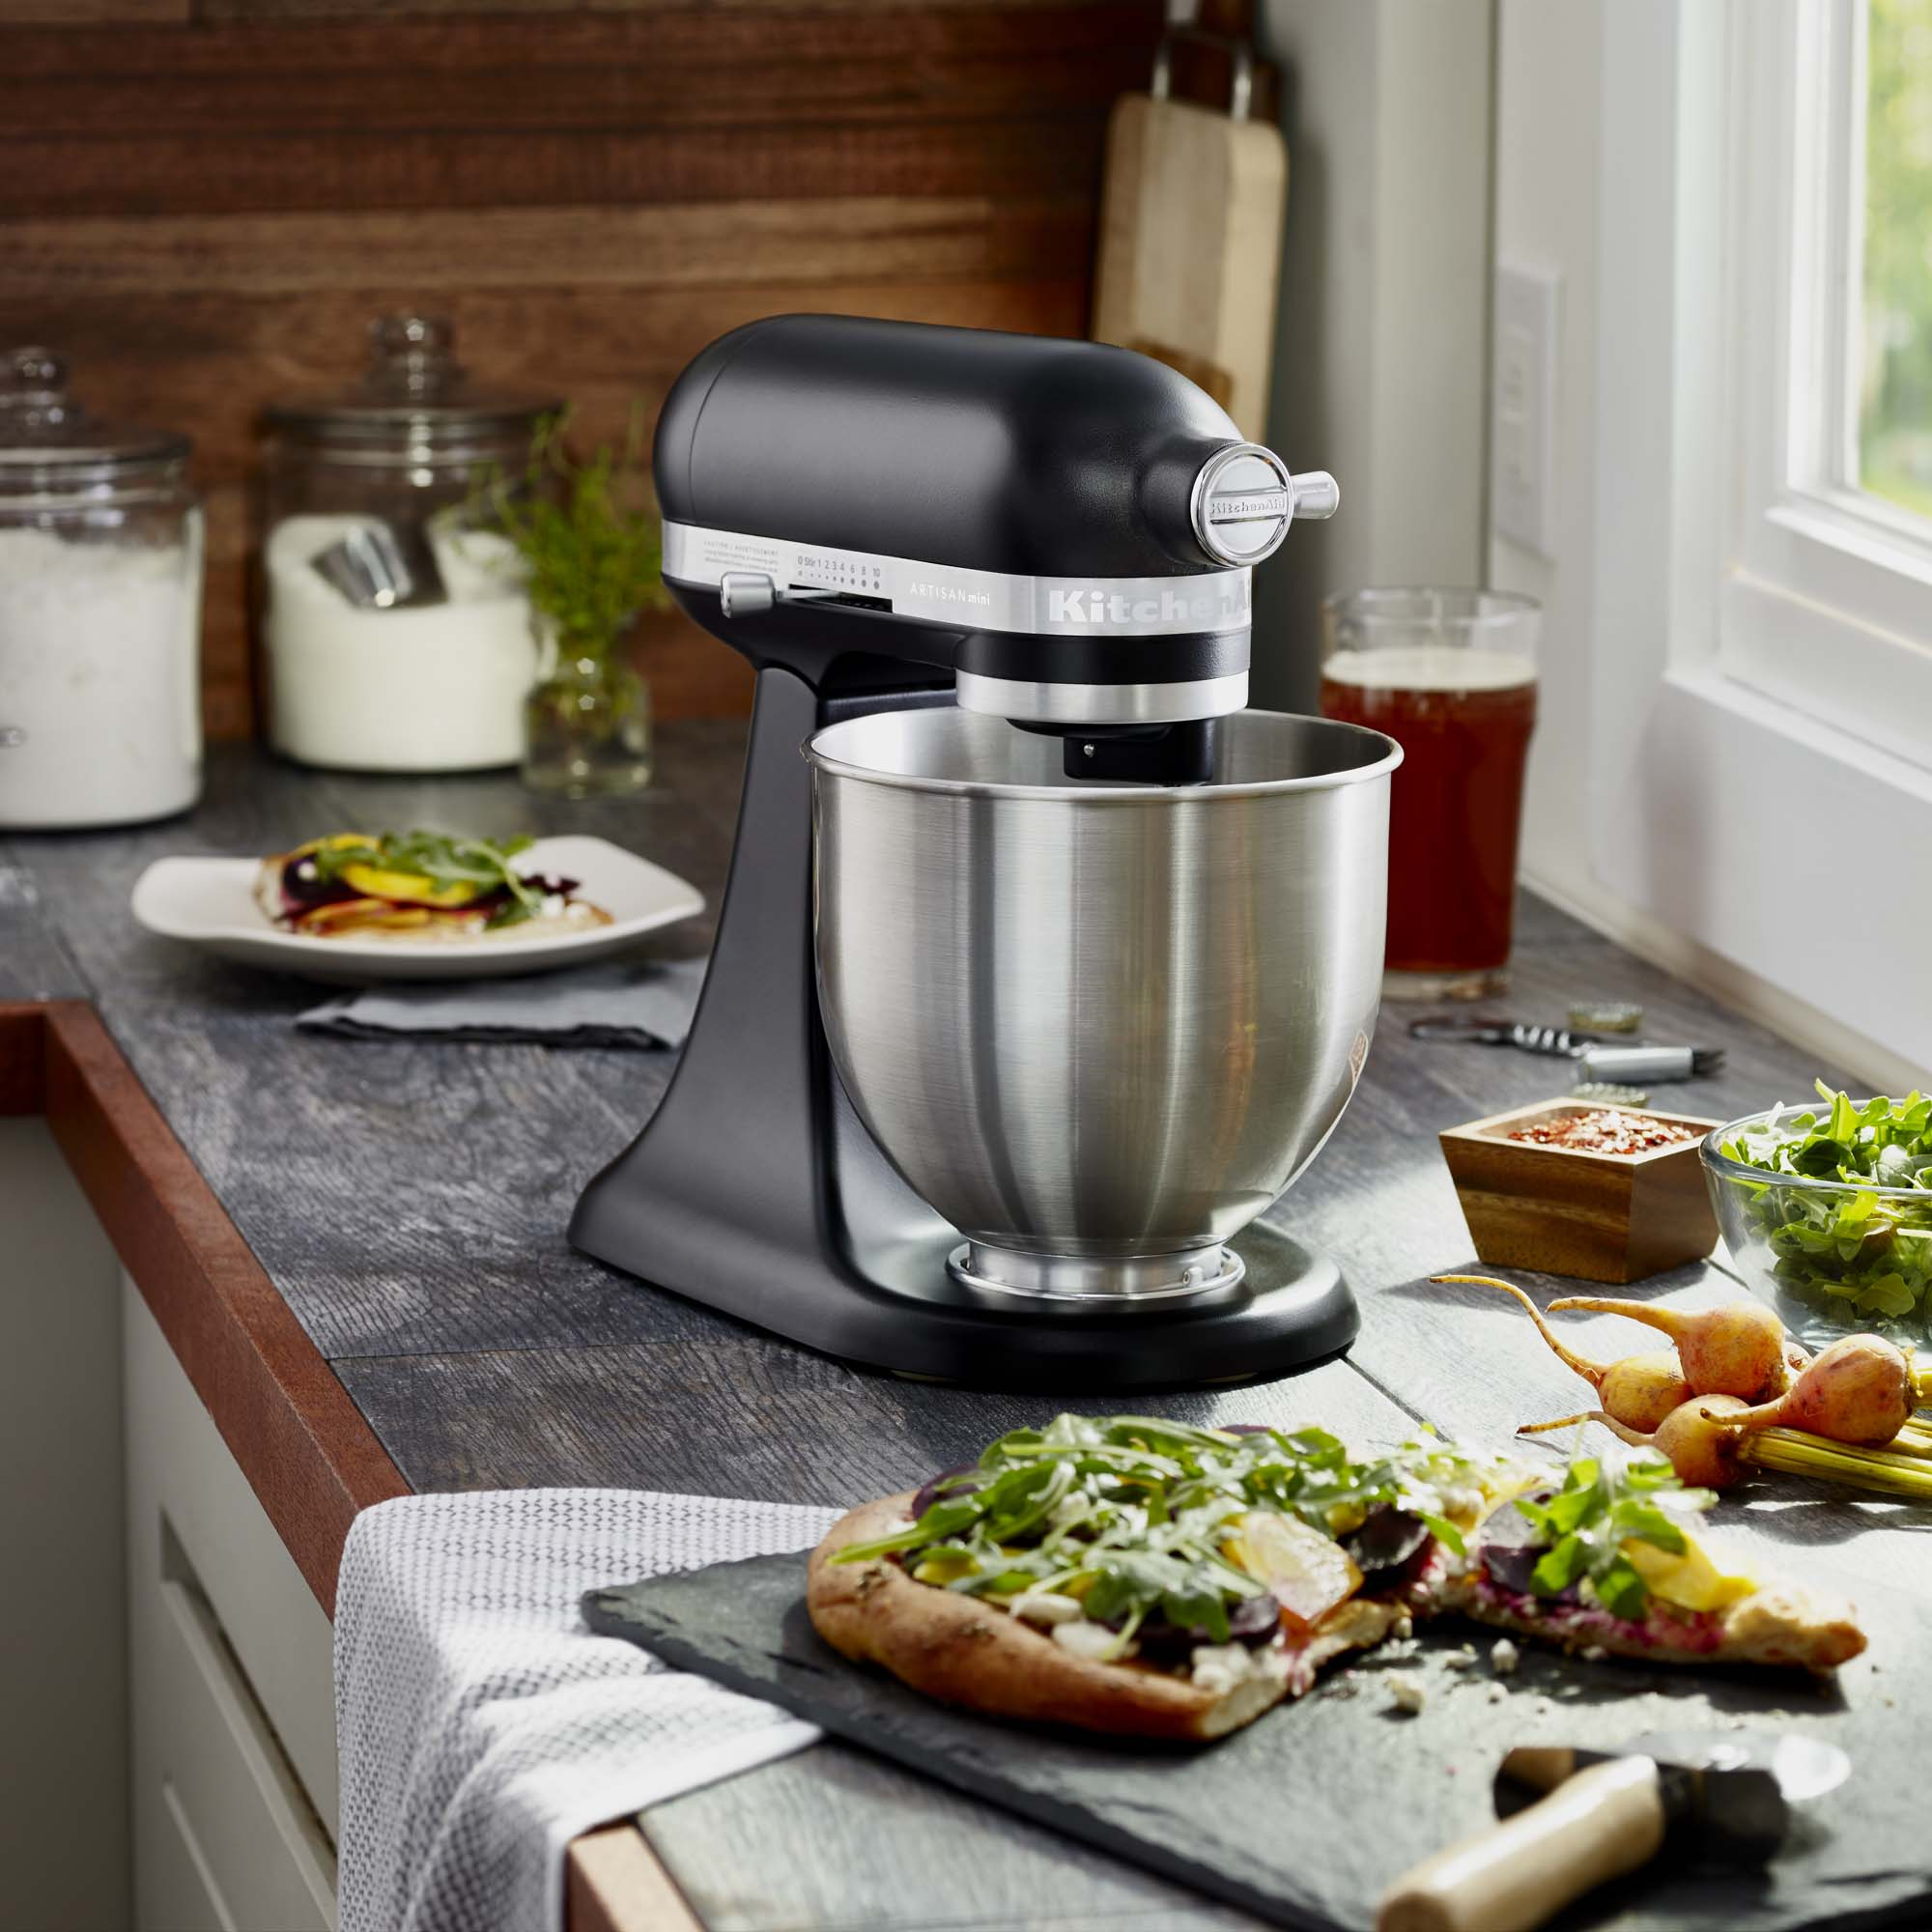 KitchenAid-Refurbished-Artisan-Mini-3-5-Quart-Tilt-Head-Stand-Mixer-RKSM33XX thumbnail 6